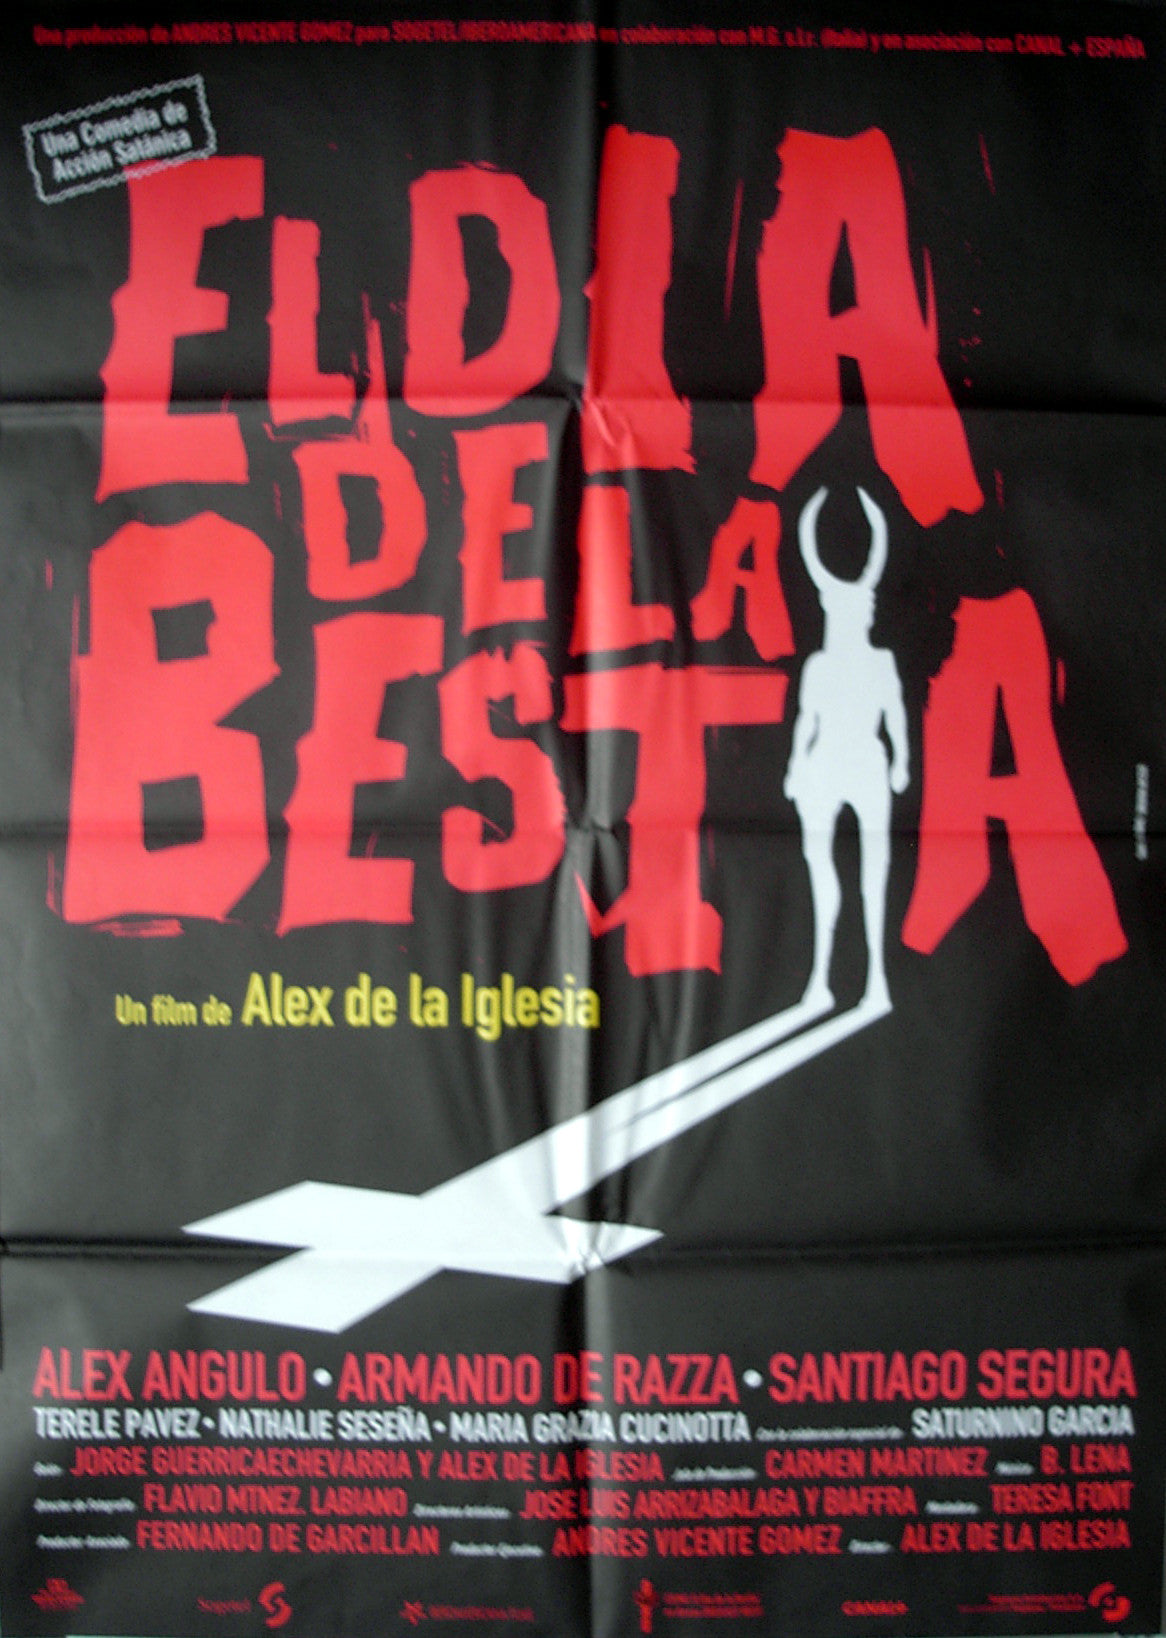 DAY OF THE BEAST - Spanish poster